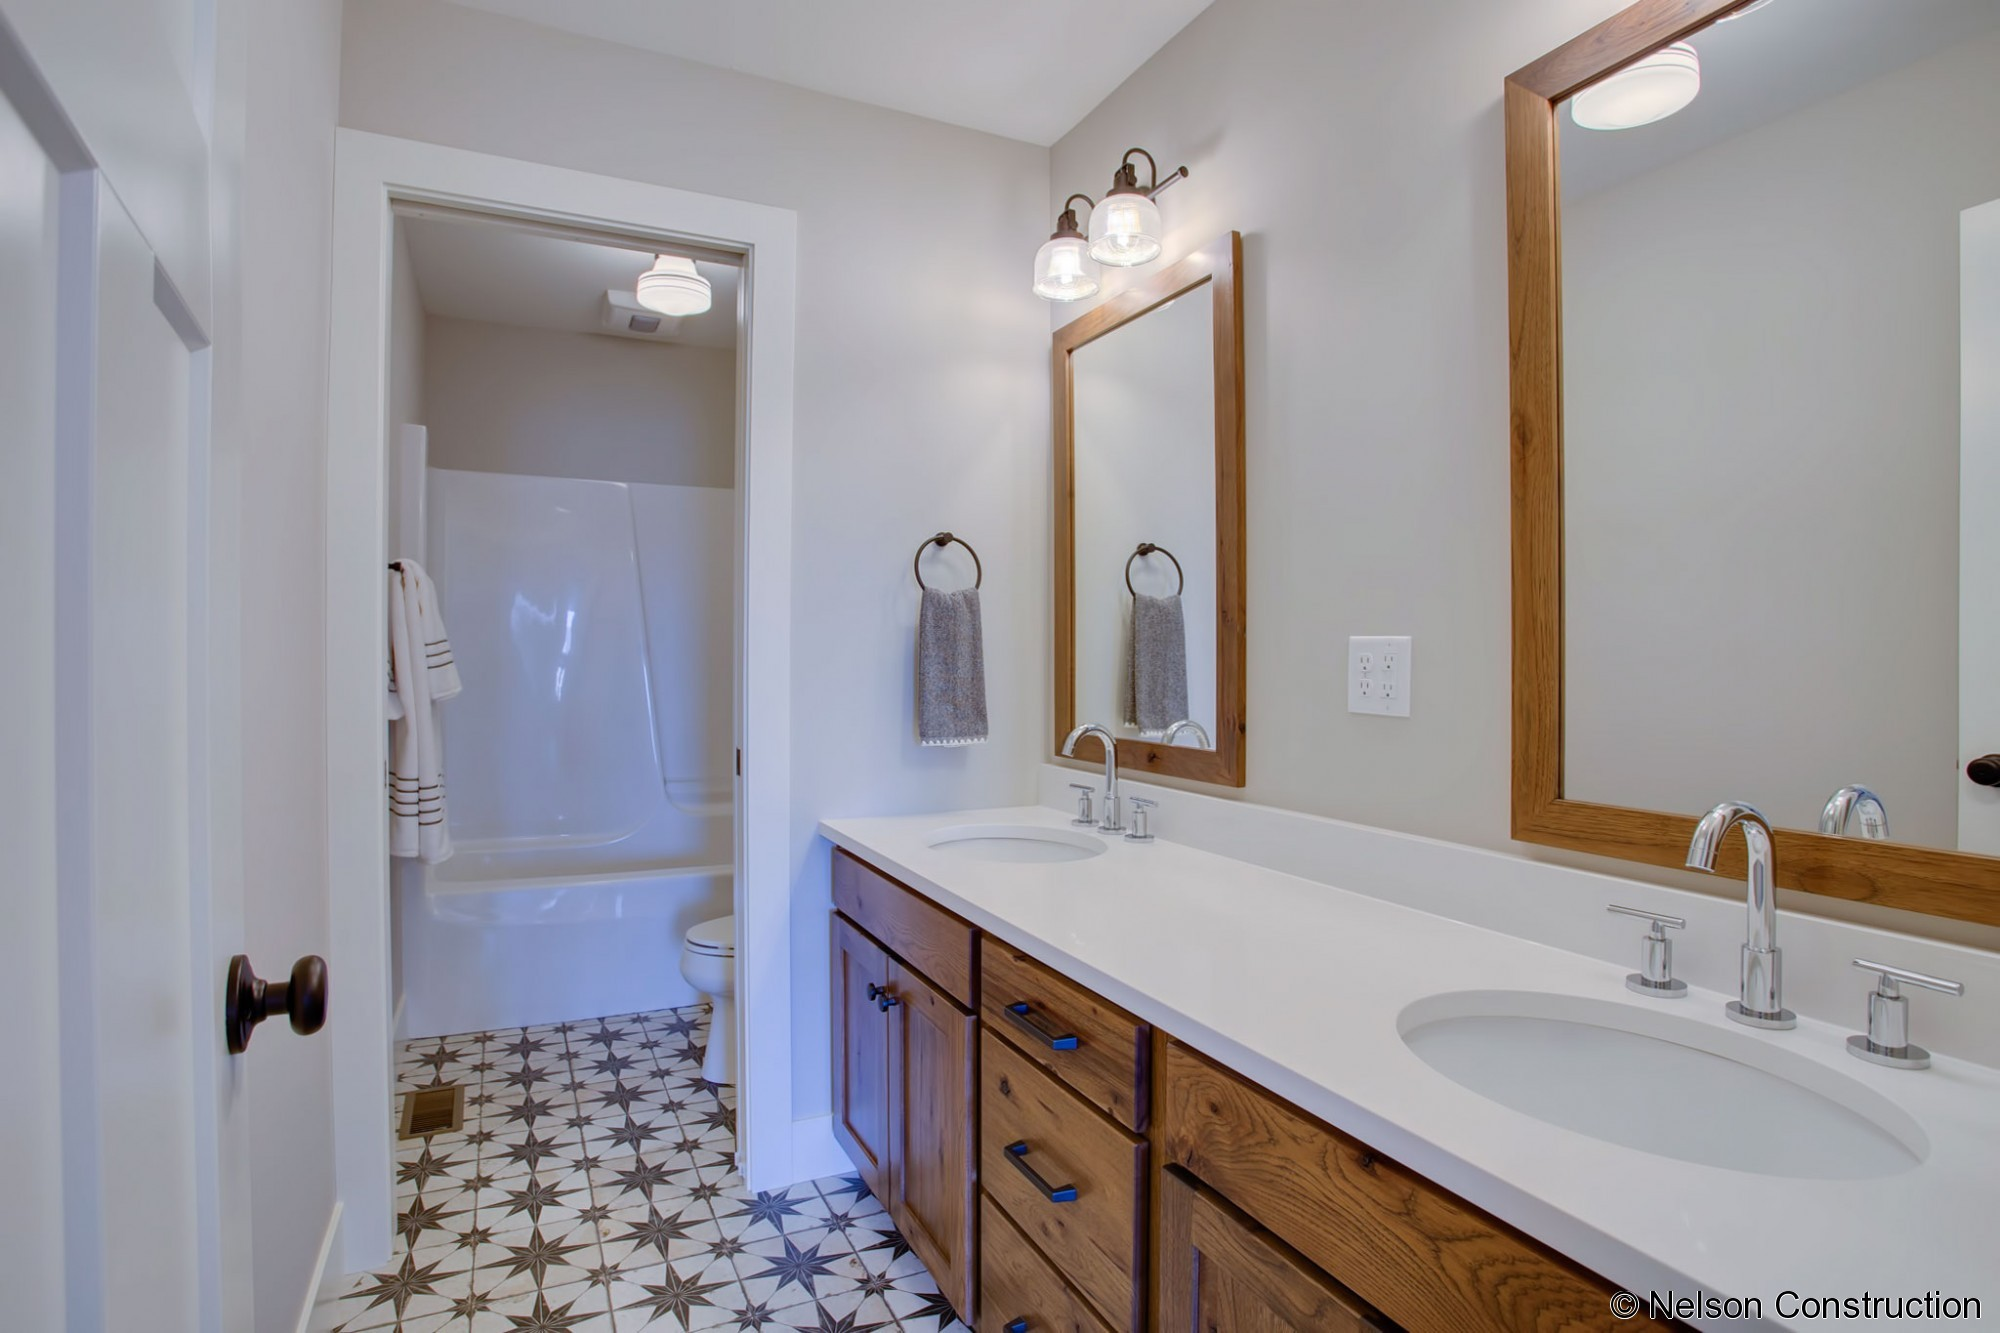 The guest bathroom of this Cherrydale plan is accented with vintage-inspired flooring and rustic hickory cabinets.